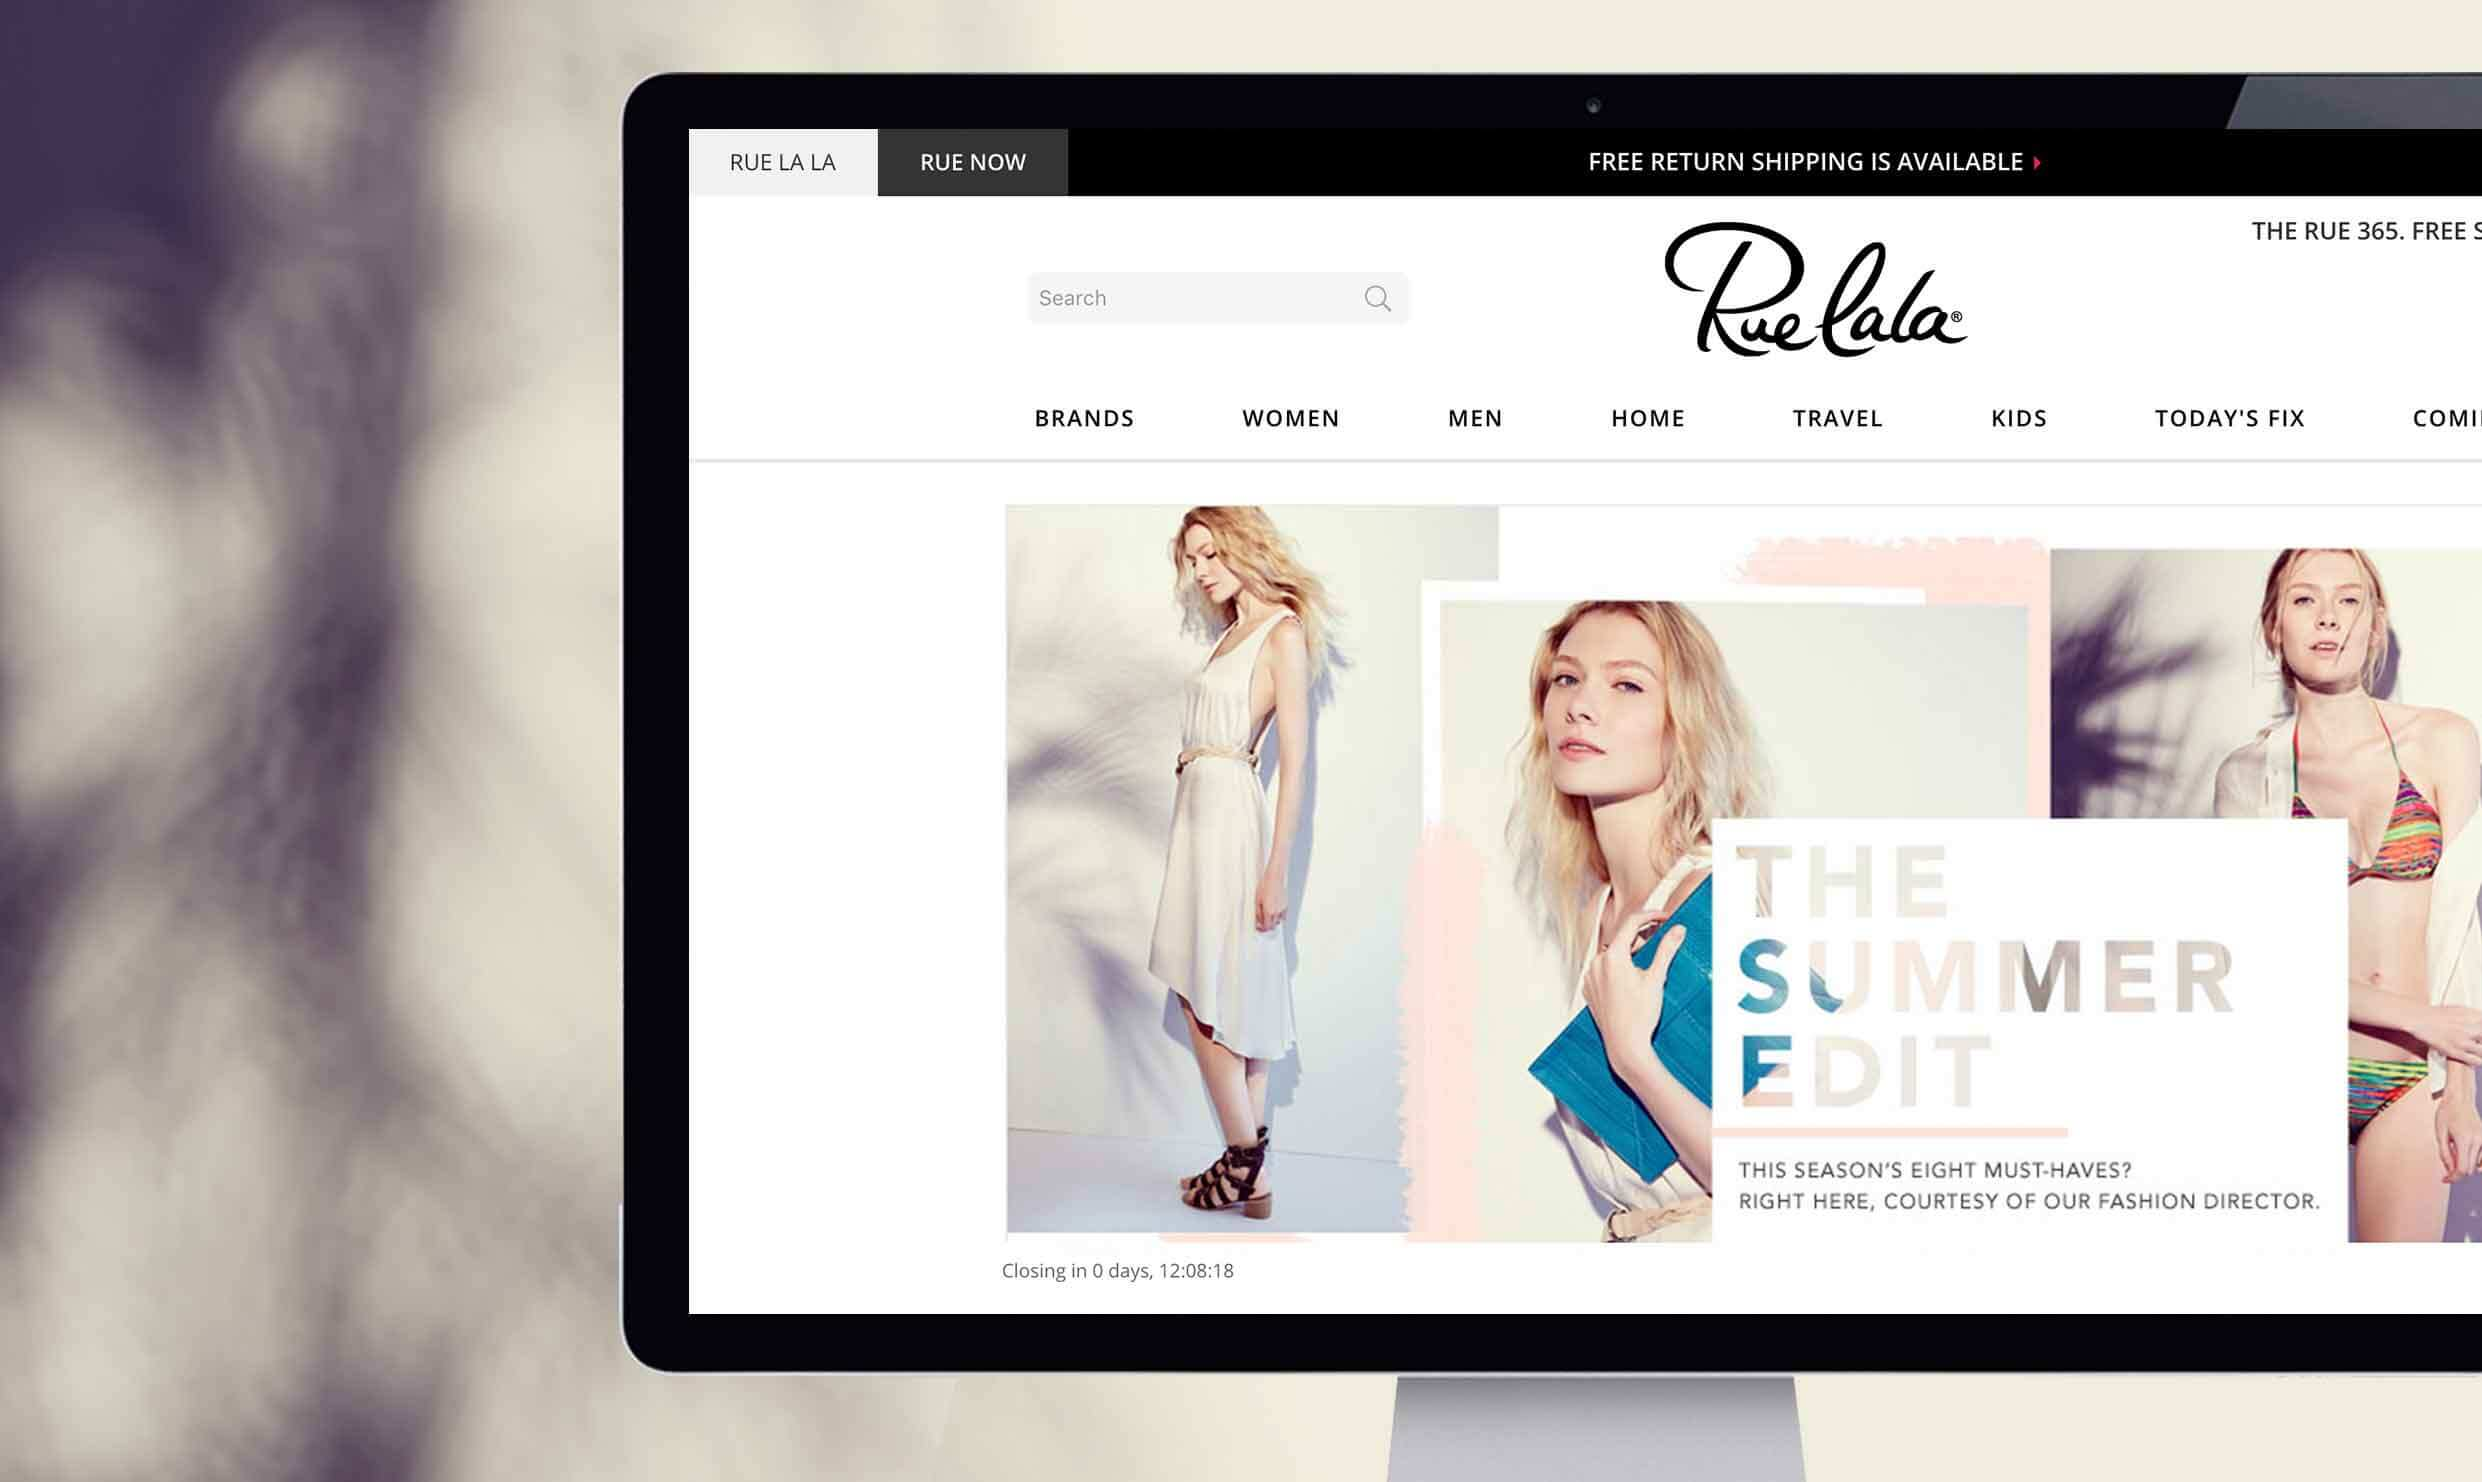 ruelala-art-direction-fashion-photography-model-modeling-ecommerce-shopping-onsite-website-designer-graphic-design-photo-photoshoot-shoot-photographer-stylist-onset-props-website-6.jpg